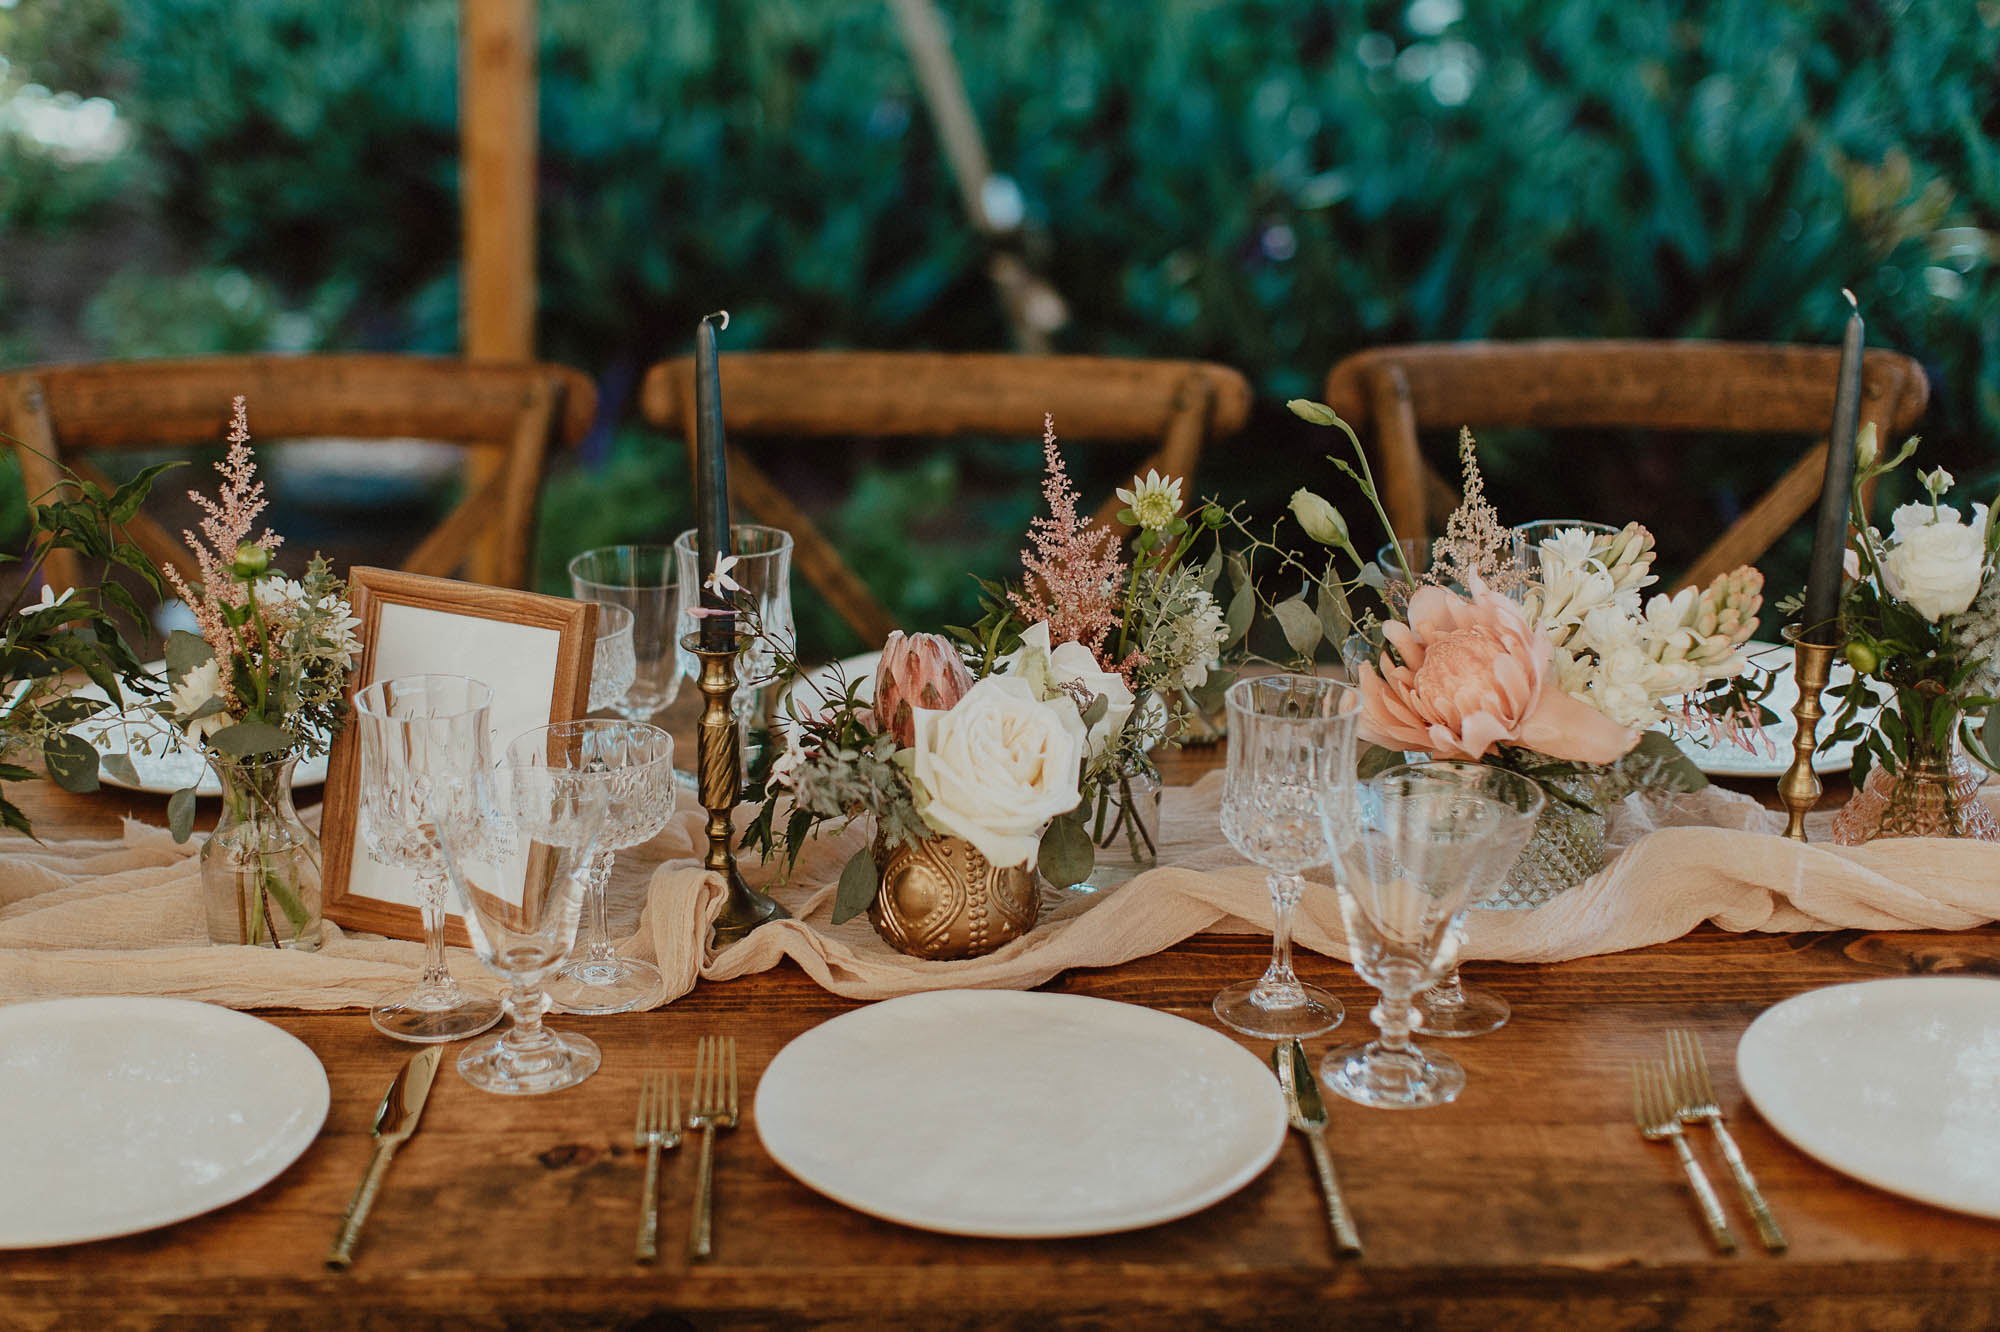 Blush and gold table setting place settings elegant california chic details